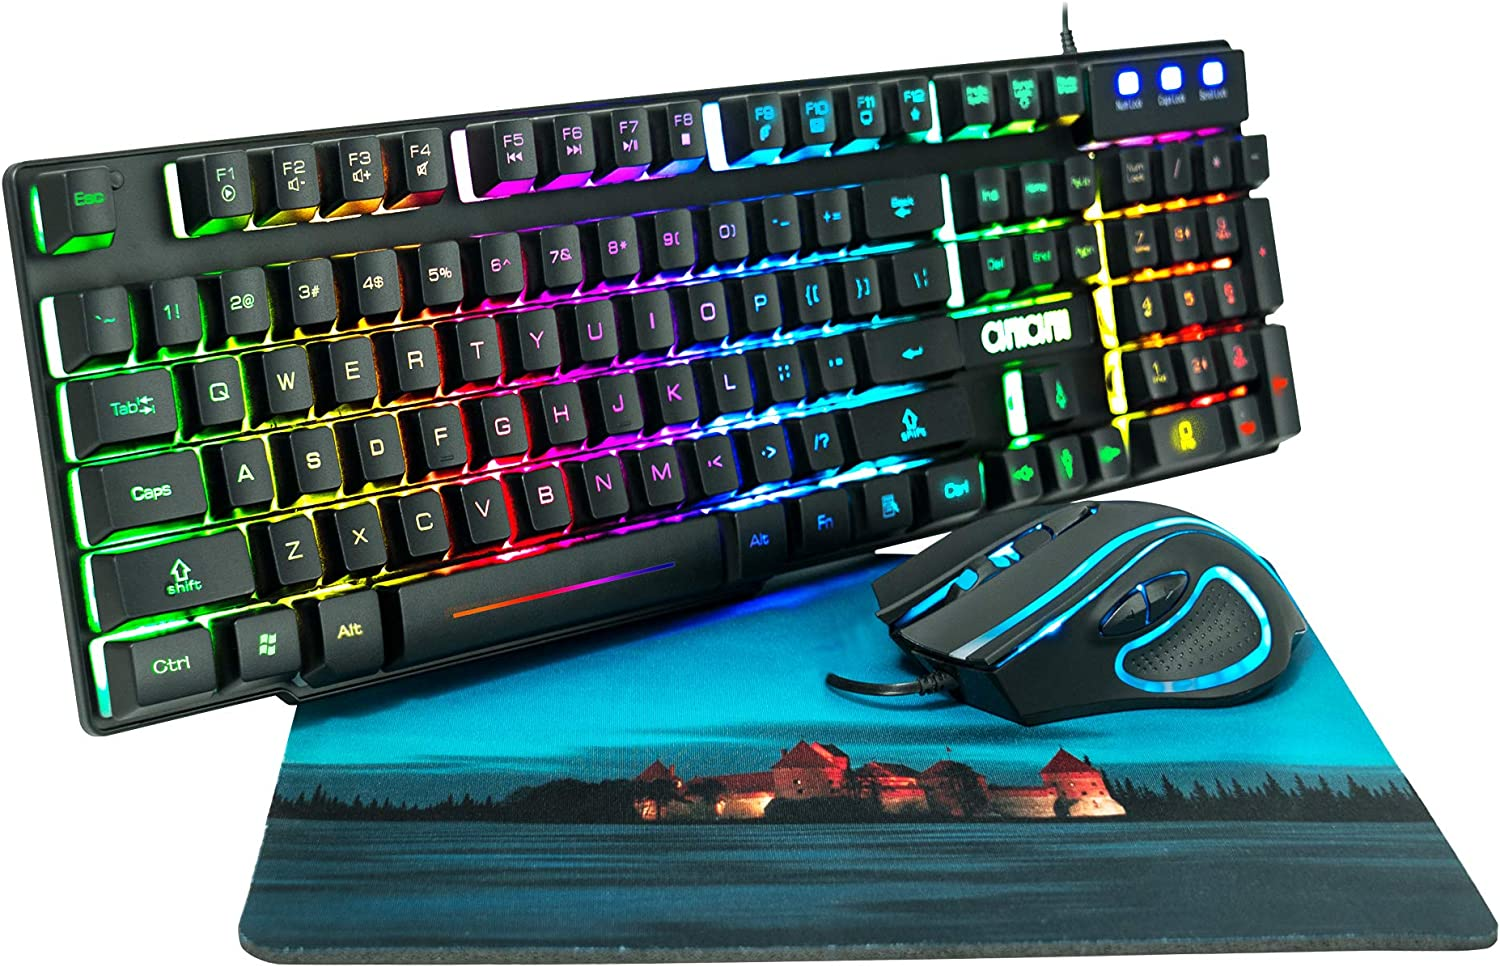 RGB Gaming Keyboard and Mouse Combo CHONCHOW 991b Rainbow Led Backlit 7 Colors Office Device Ergonomic Keyboard with Mice 3200 DPI Adjustable Compatible with PS4a/Ps3 Xbox one Windows Mac PC